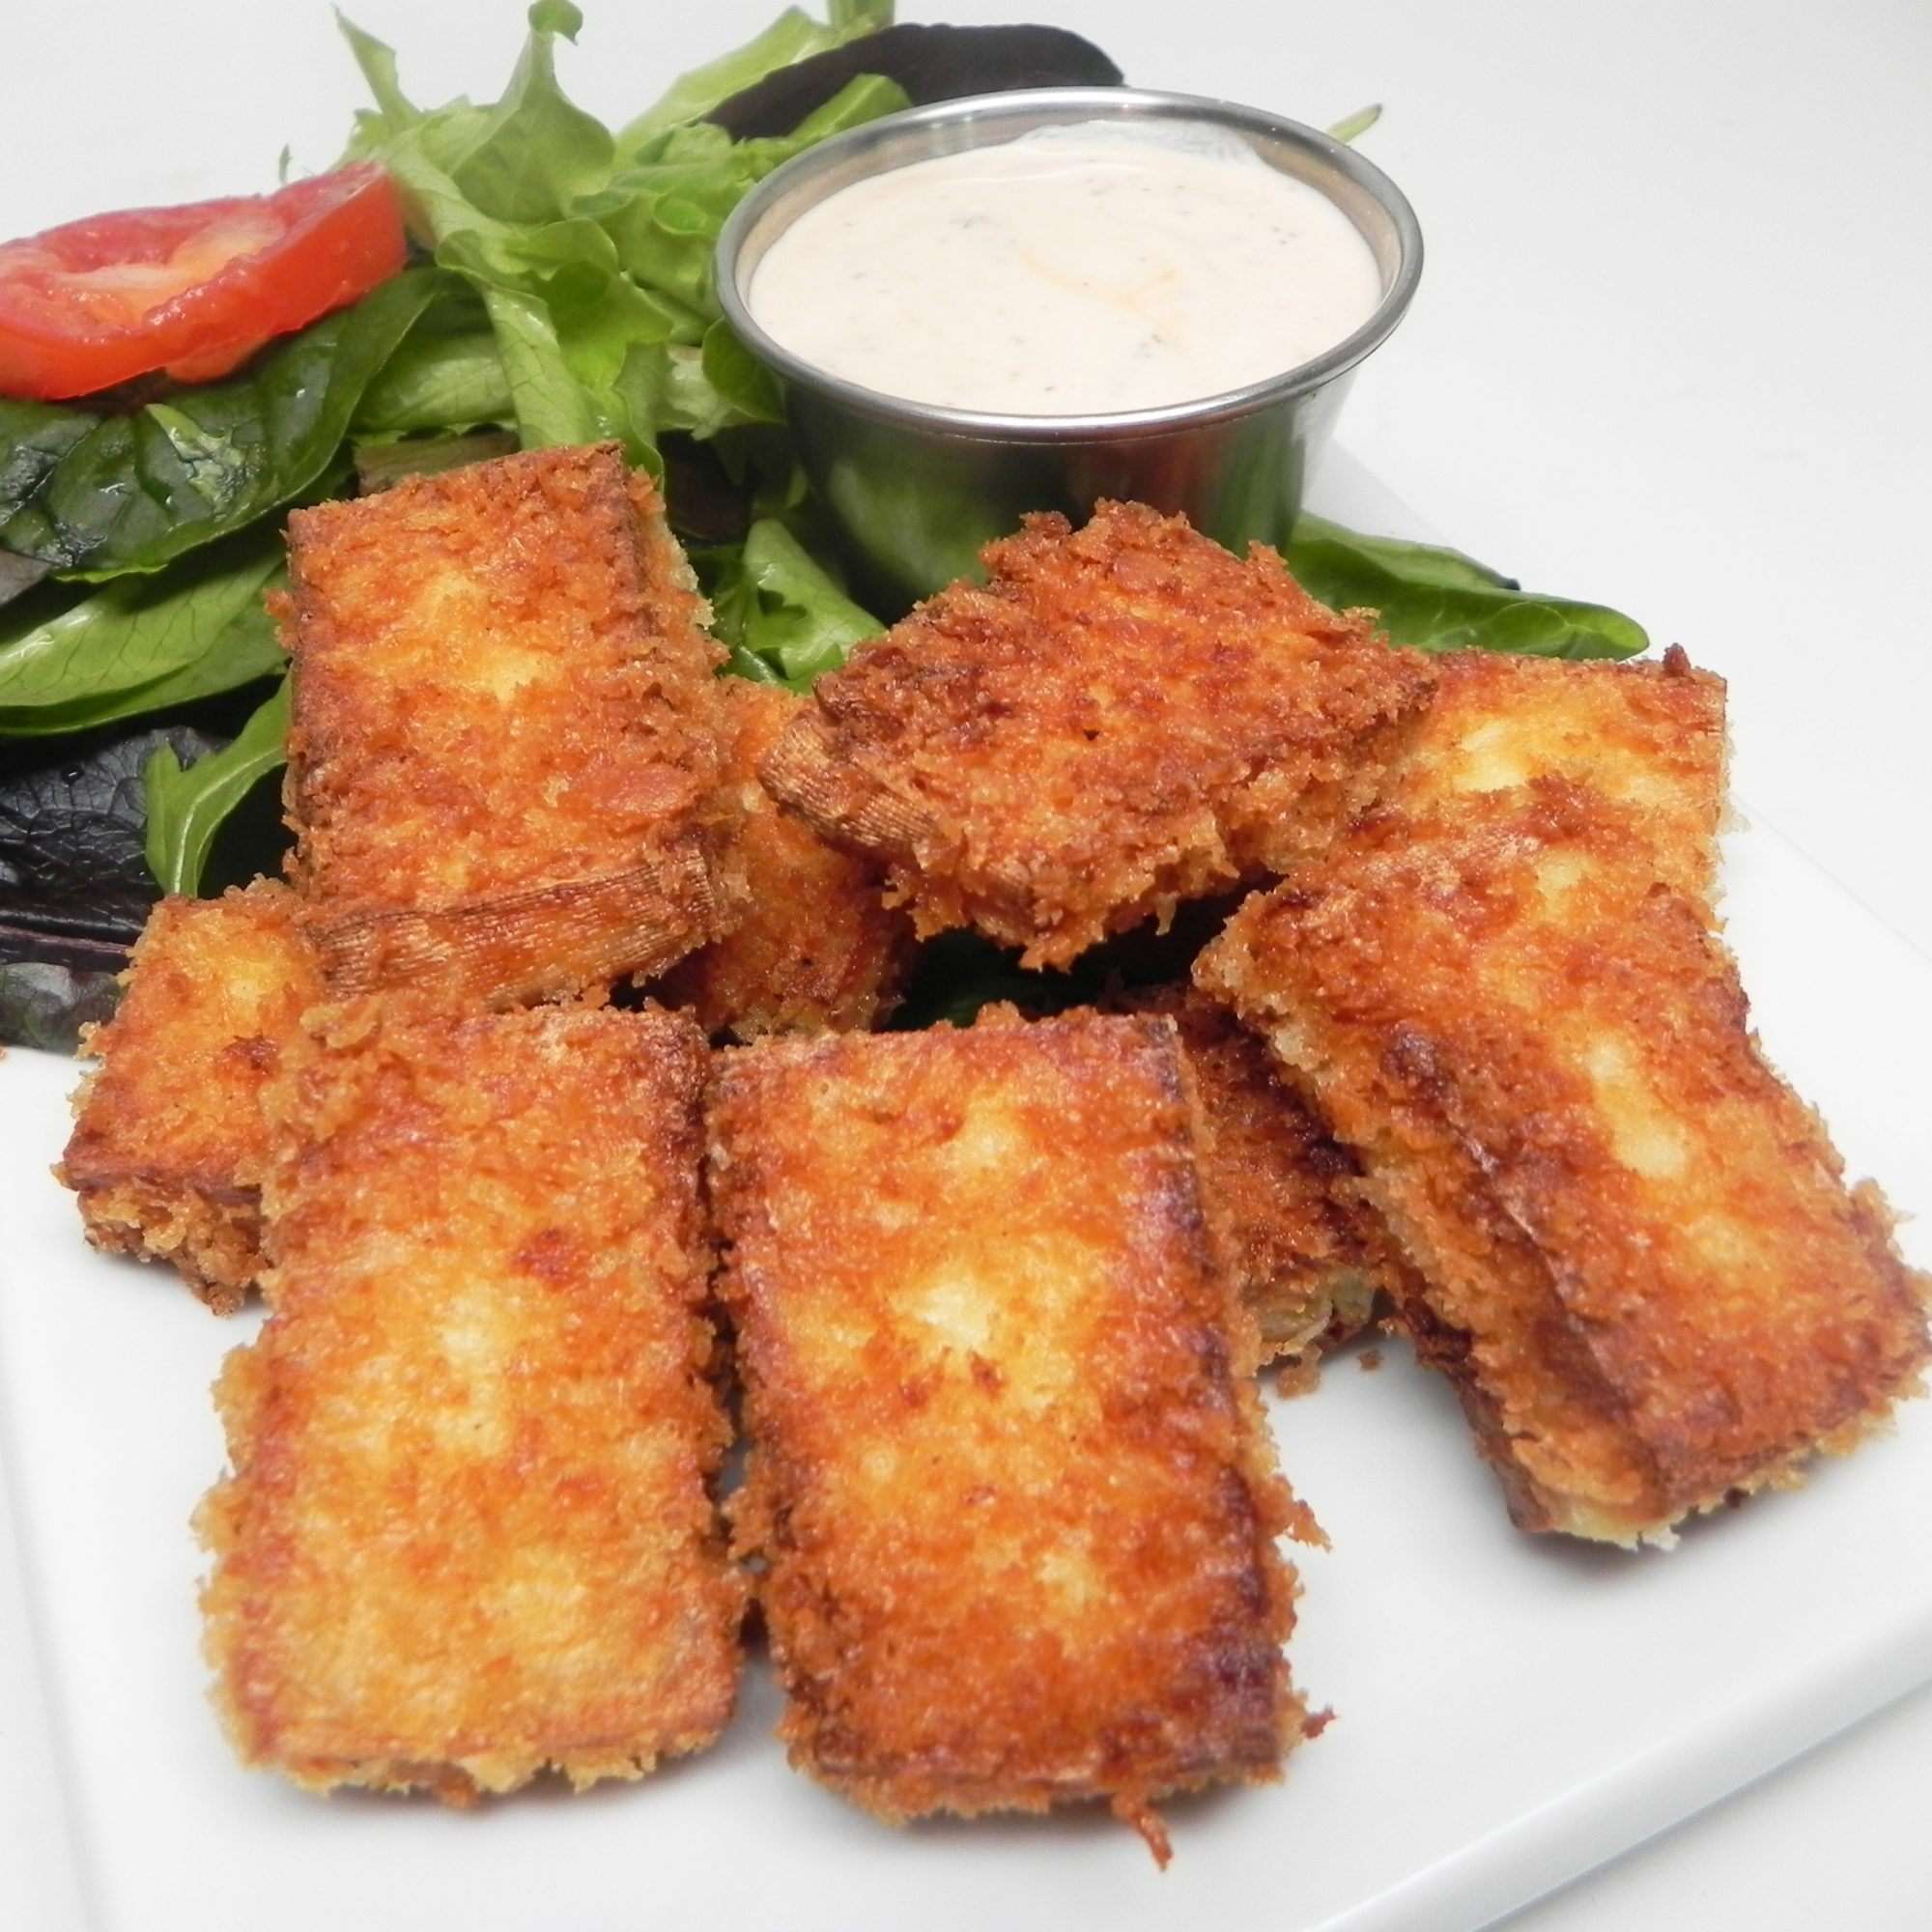 Breaded Tofu Nuggets on a white plate